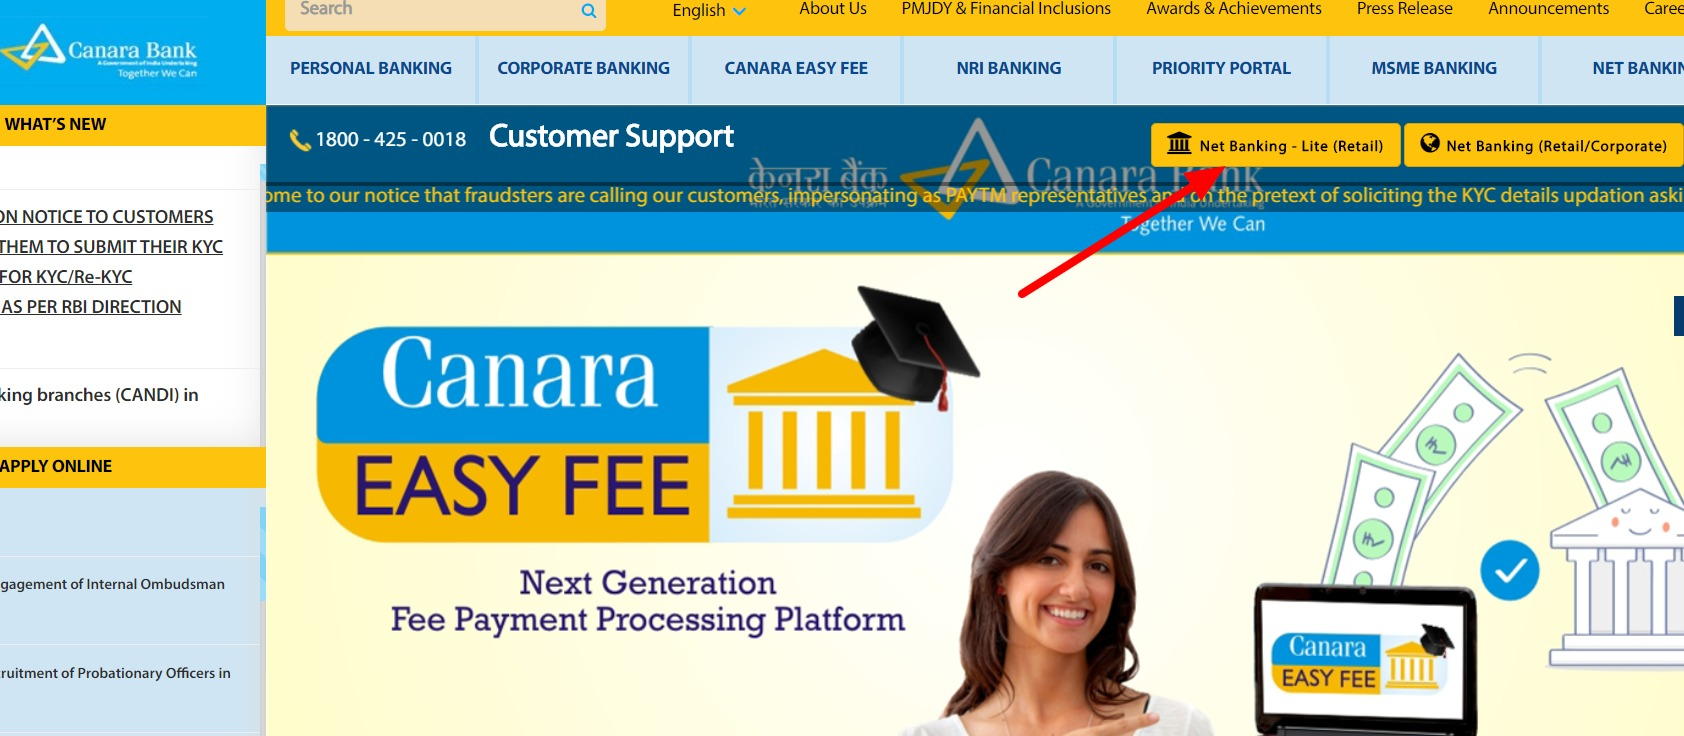 Canara Bank Net Banking : How To Register, Activate & More 20